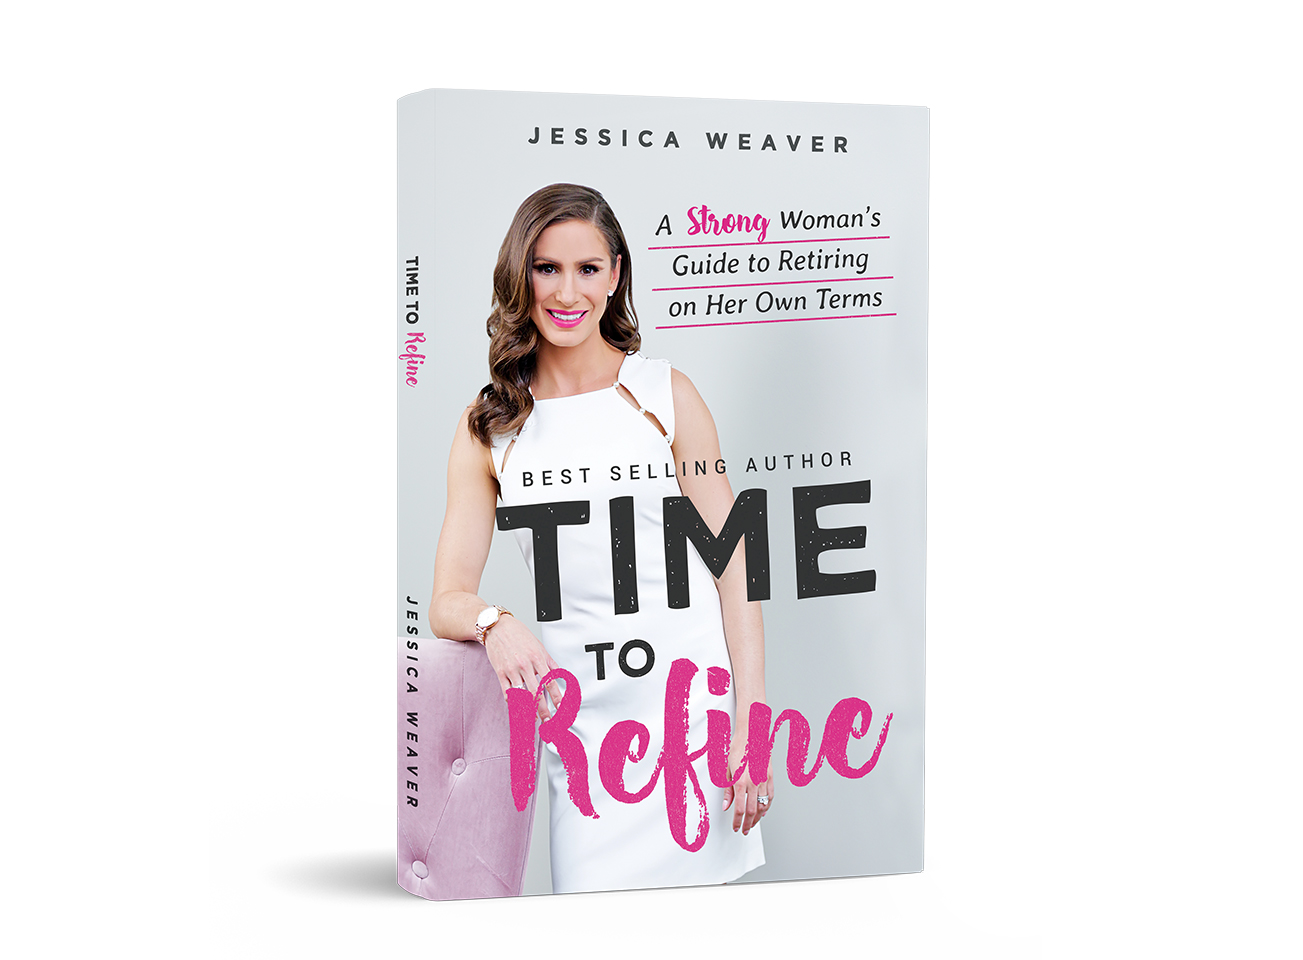 - Enter your email below by clicking the bonuses button to receive:#pinkfix Book Bonuses!One on one 45 minute FREE Money Action Plan, VALUE of $350.Money Efficiency Exam to see how efficient your money is working for you. VALUE of $750Strong Retirement Club Workbook to build out your Refinement savings and income! VALUE of $250